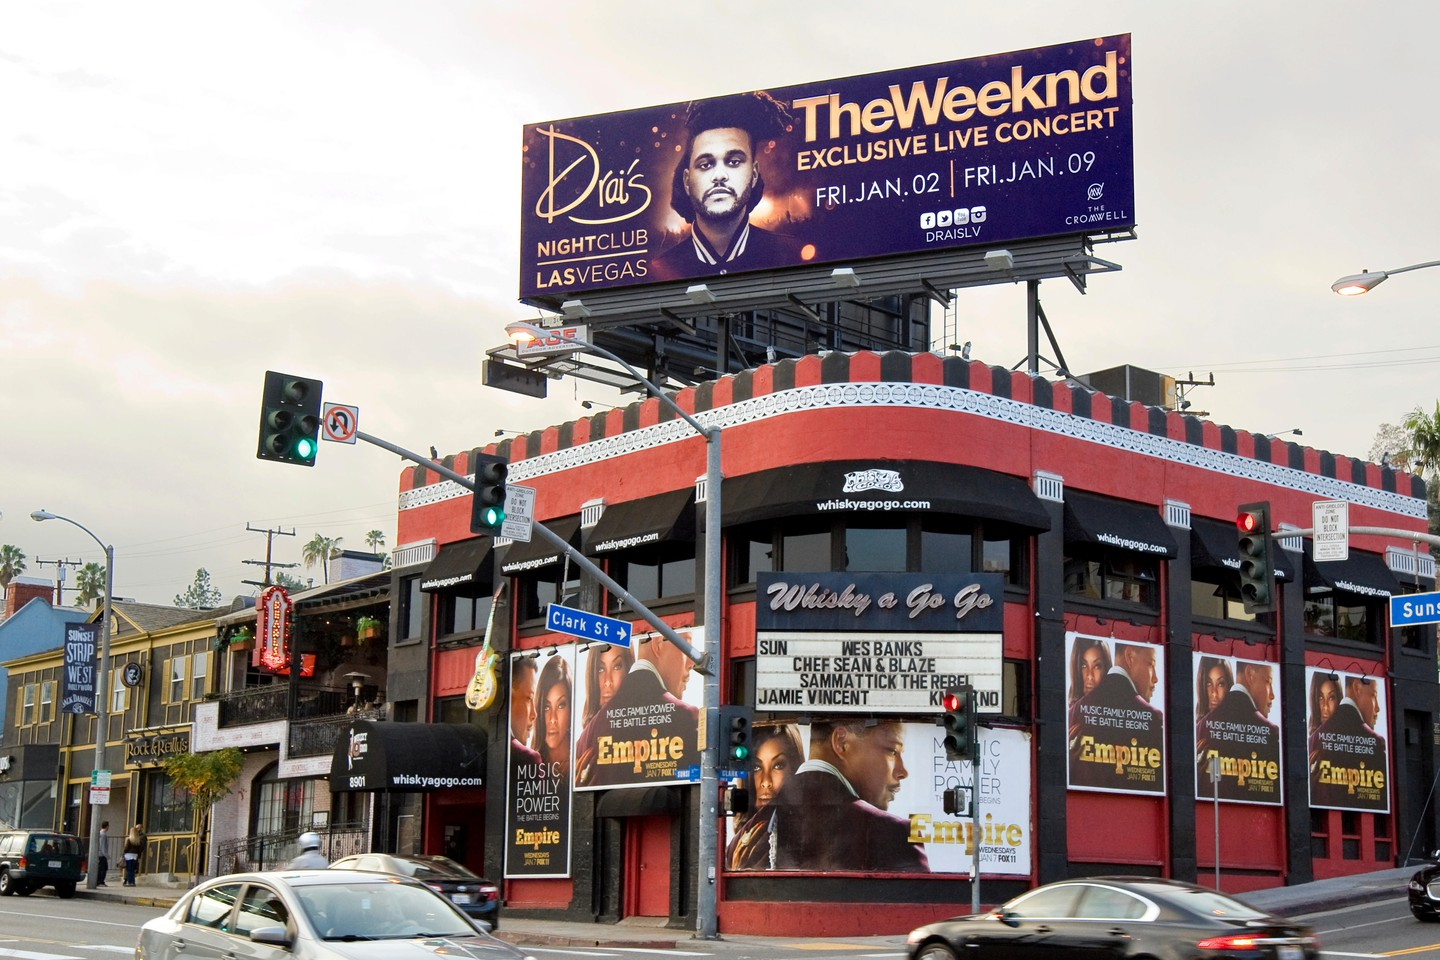 The Whisky A Go Go on the Sunset Strip in West Hollywood